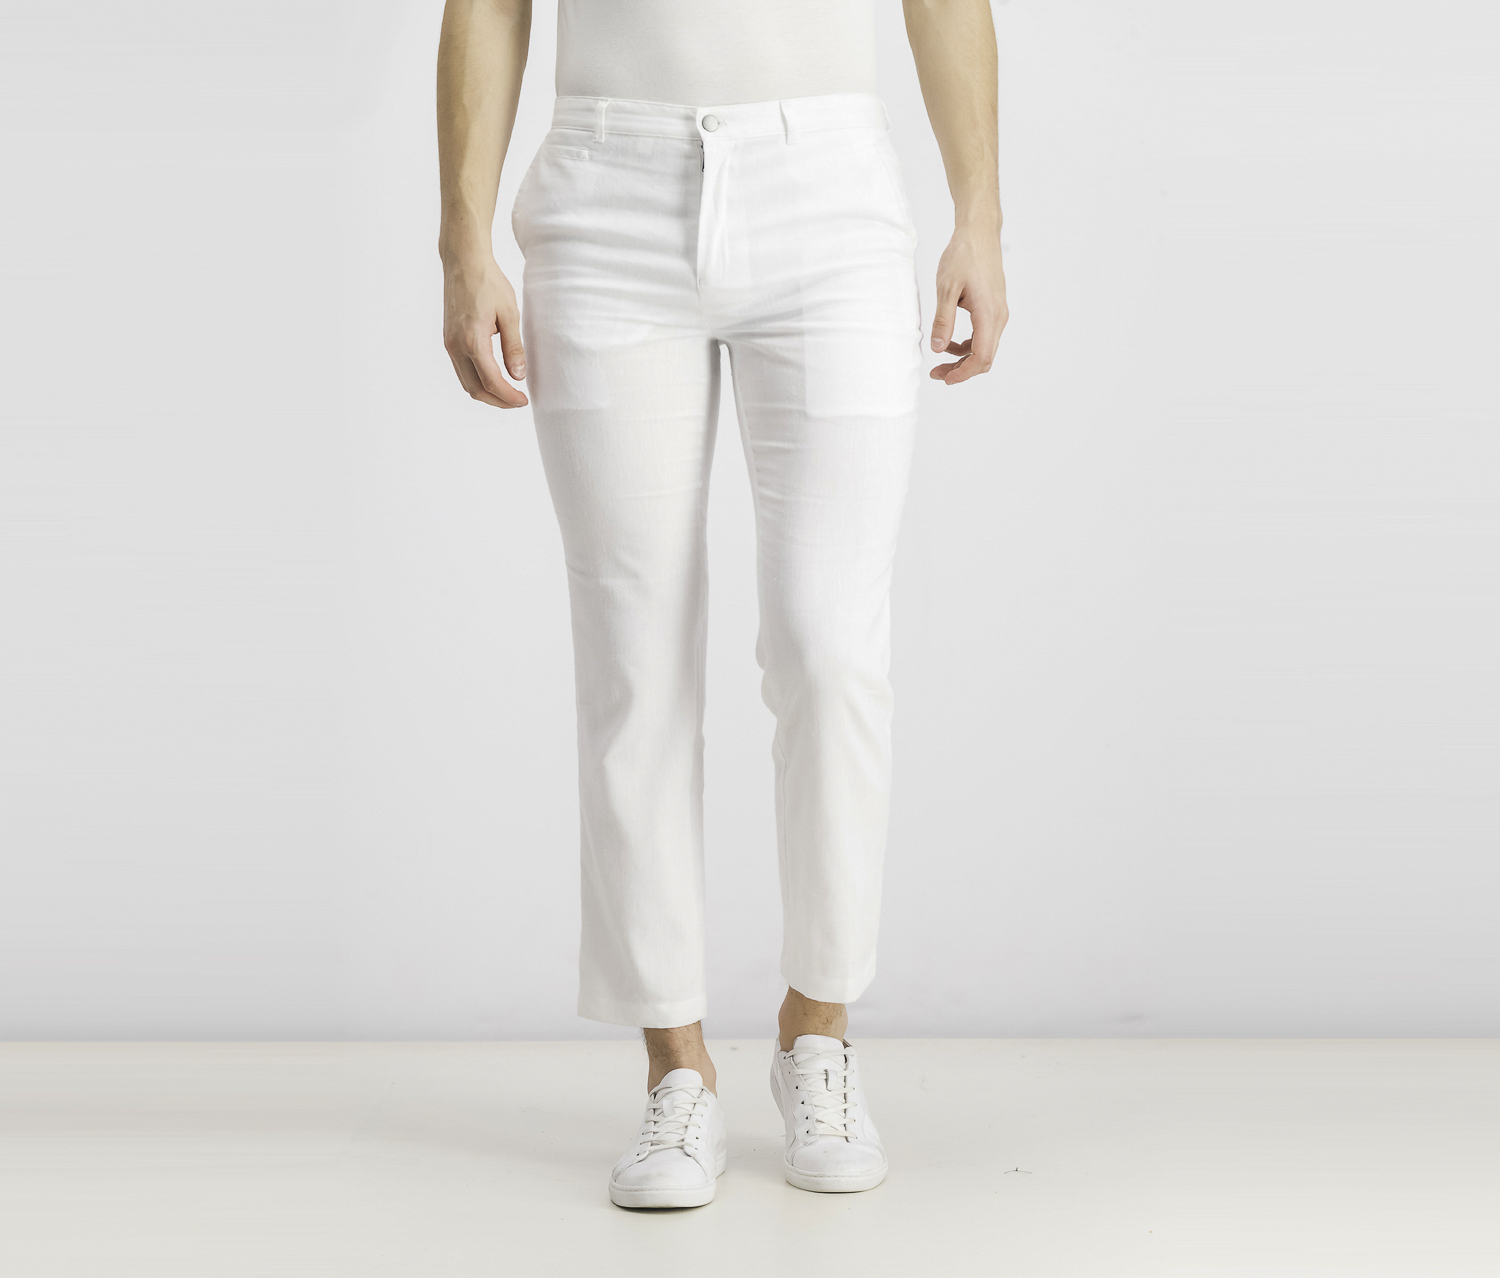 Men's Slim-Fit Stretch Linen Pants, White